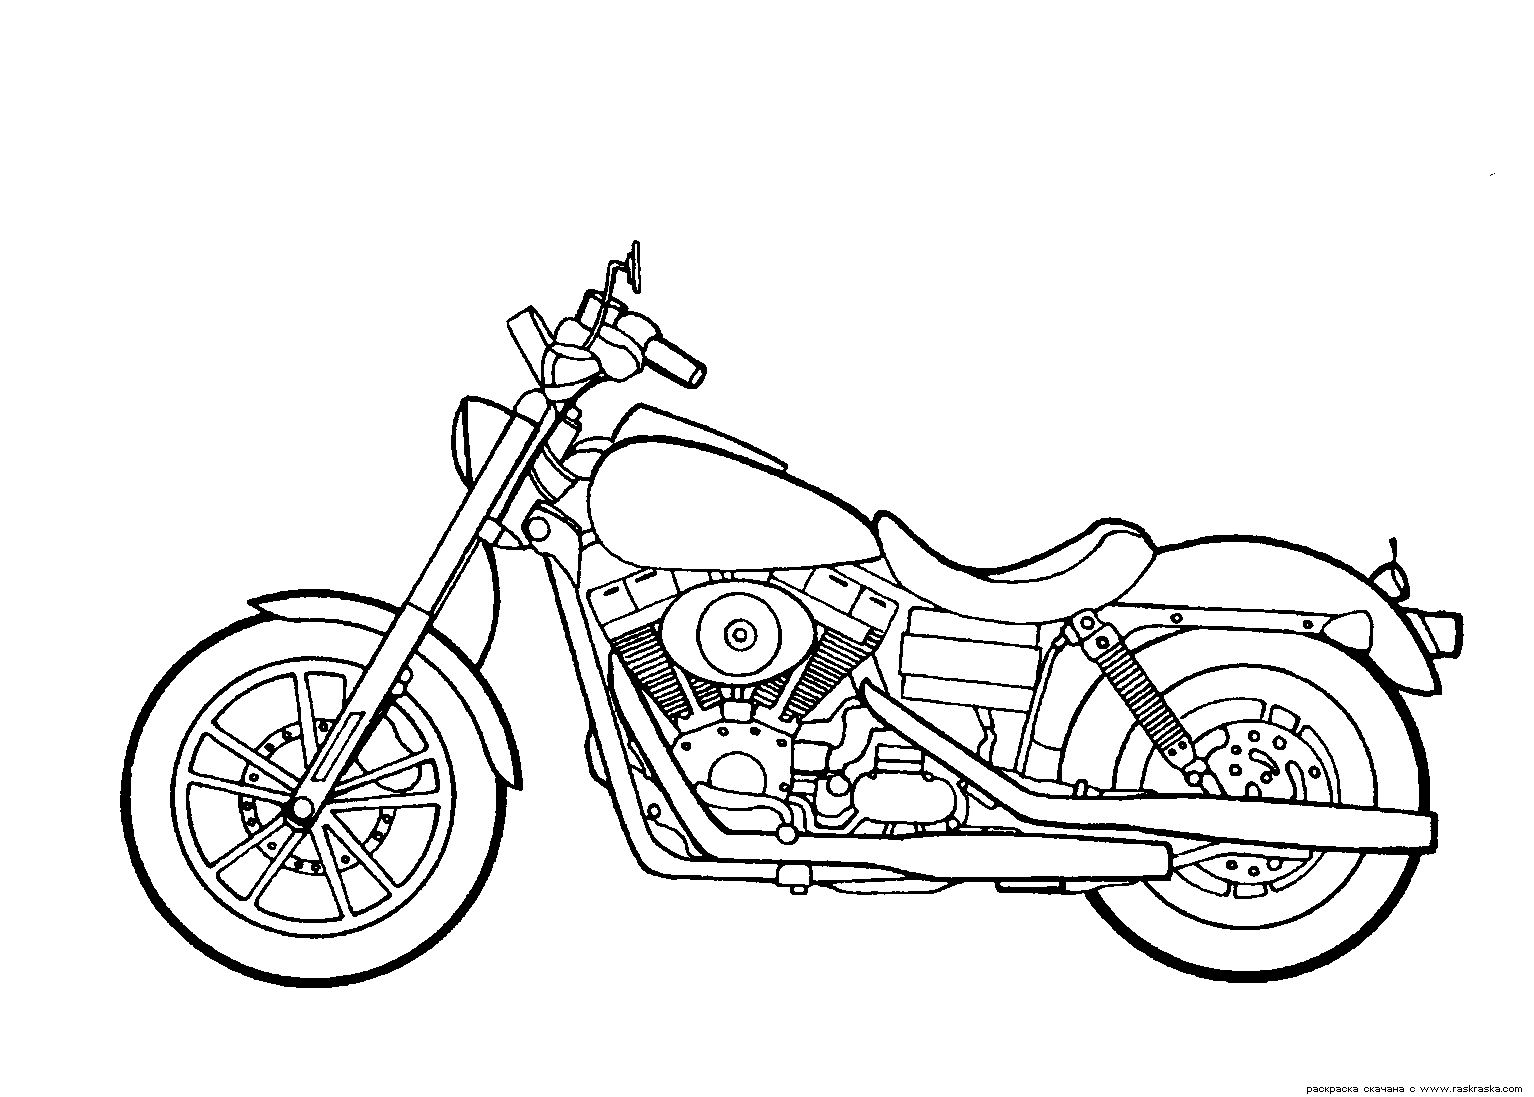 harley davidson coloring pages harley coloring harley davidson free motorcycles coloring harley davidson pages